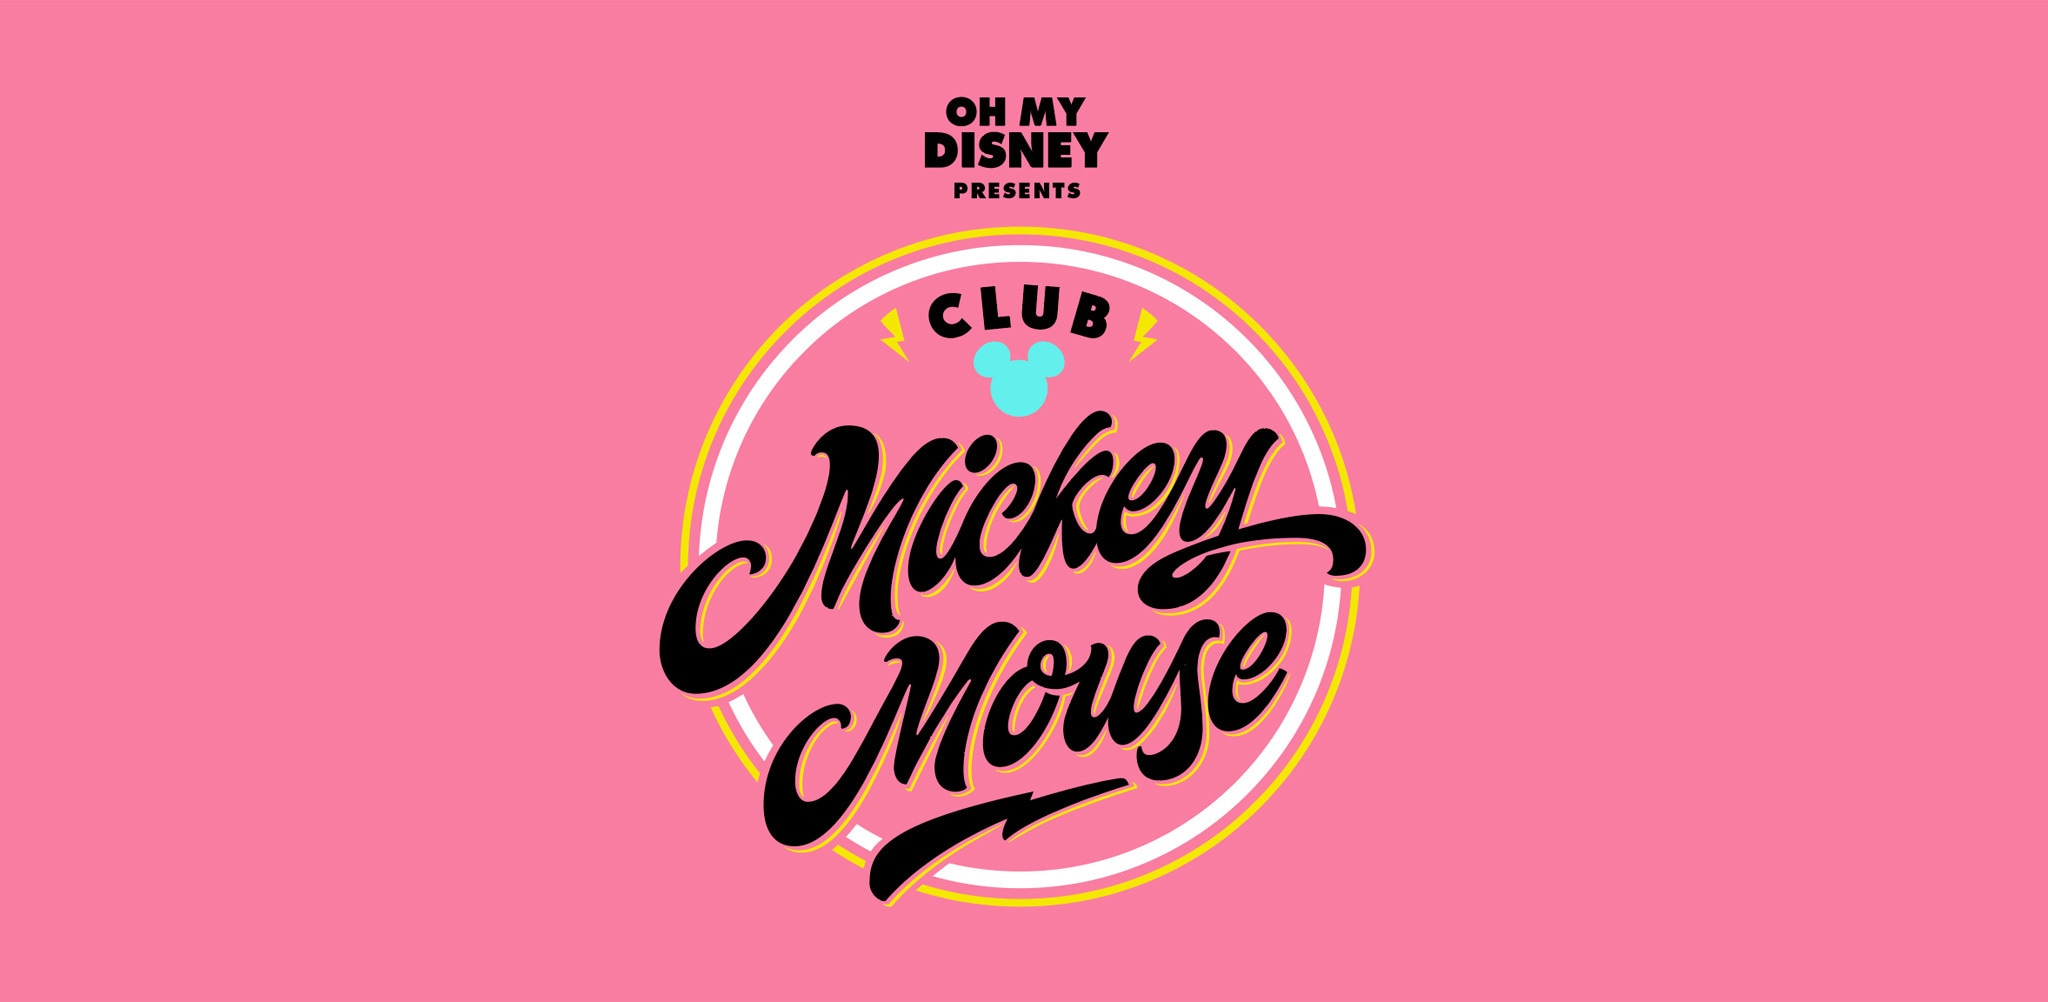 Club Mickey Mouse on